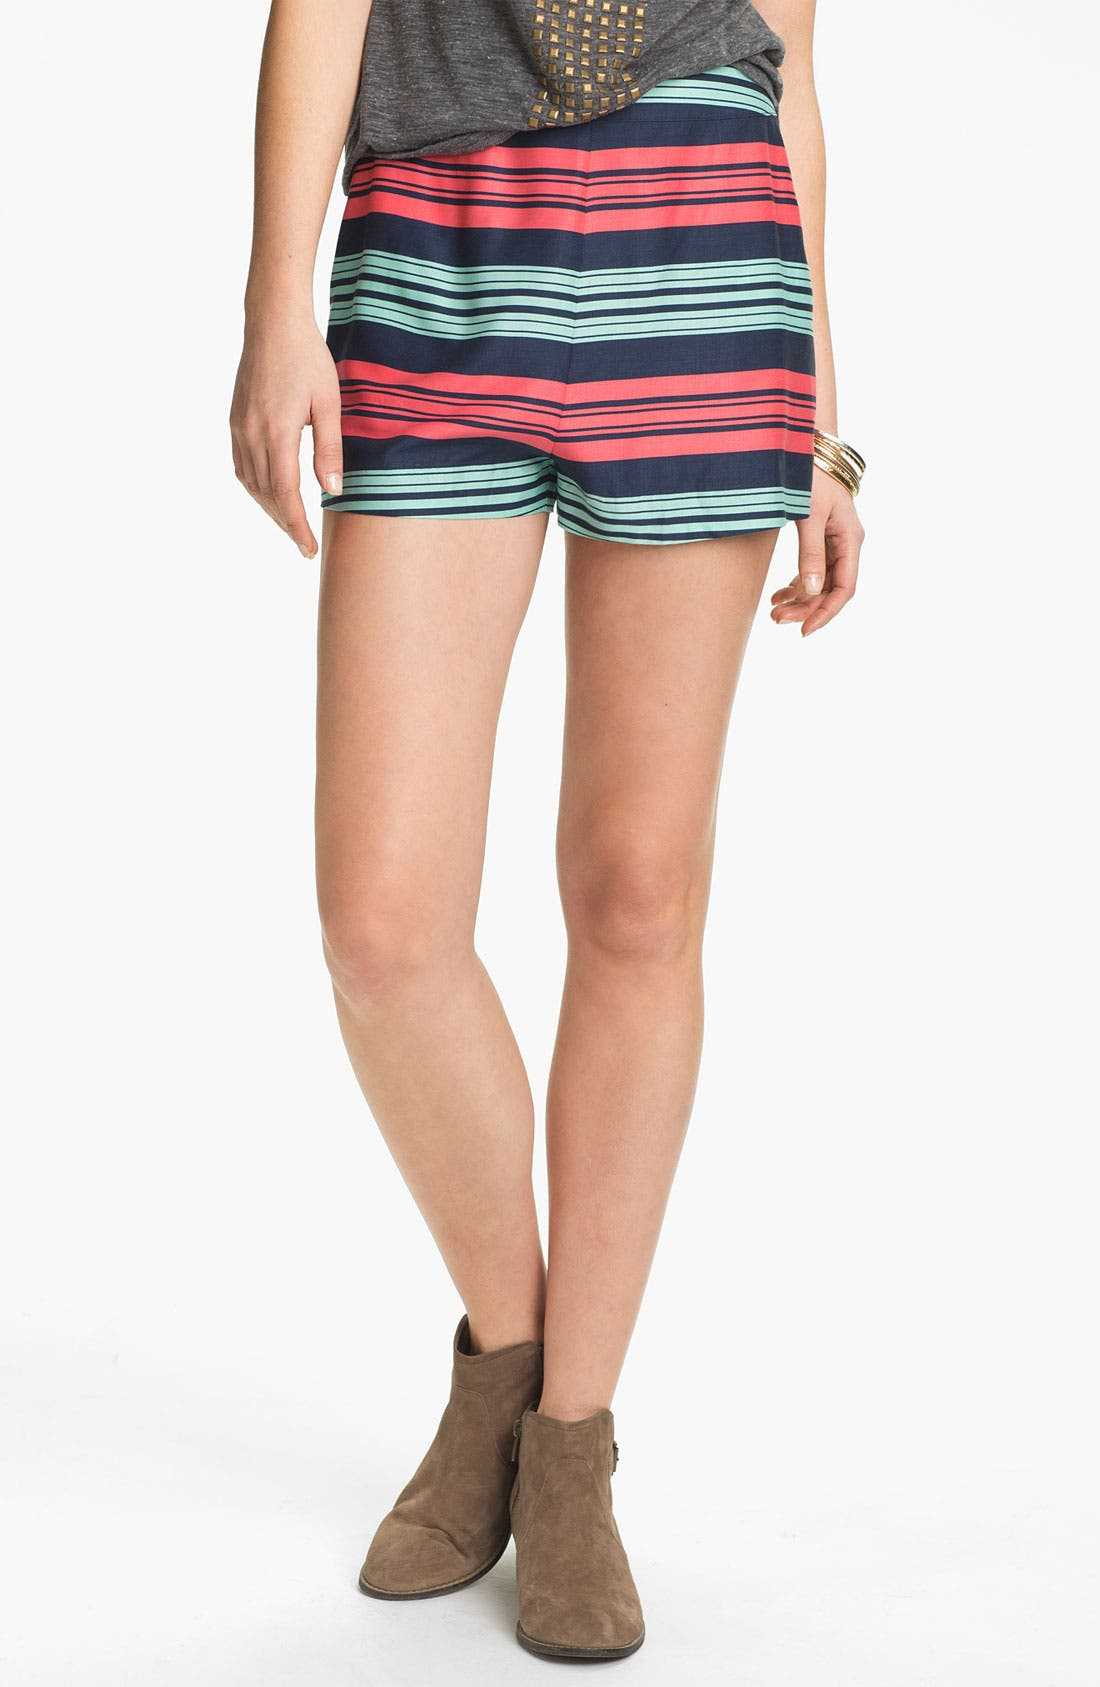 Alternate Image 1 Selected - BP. High Waist Stripe Shorts (Juniors)